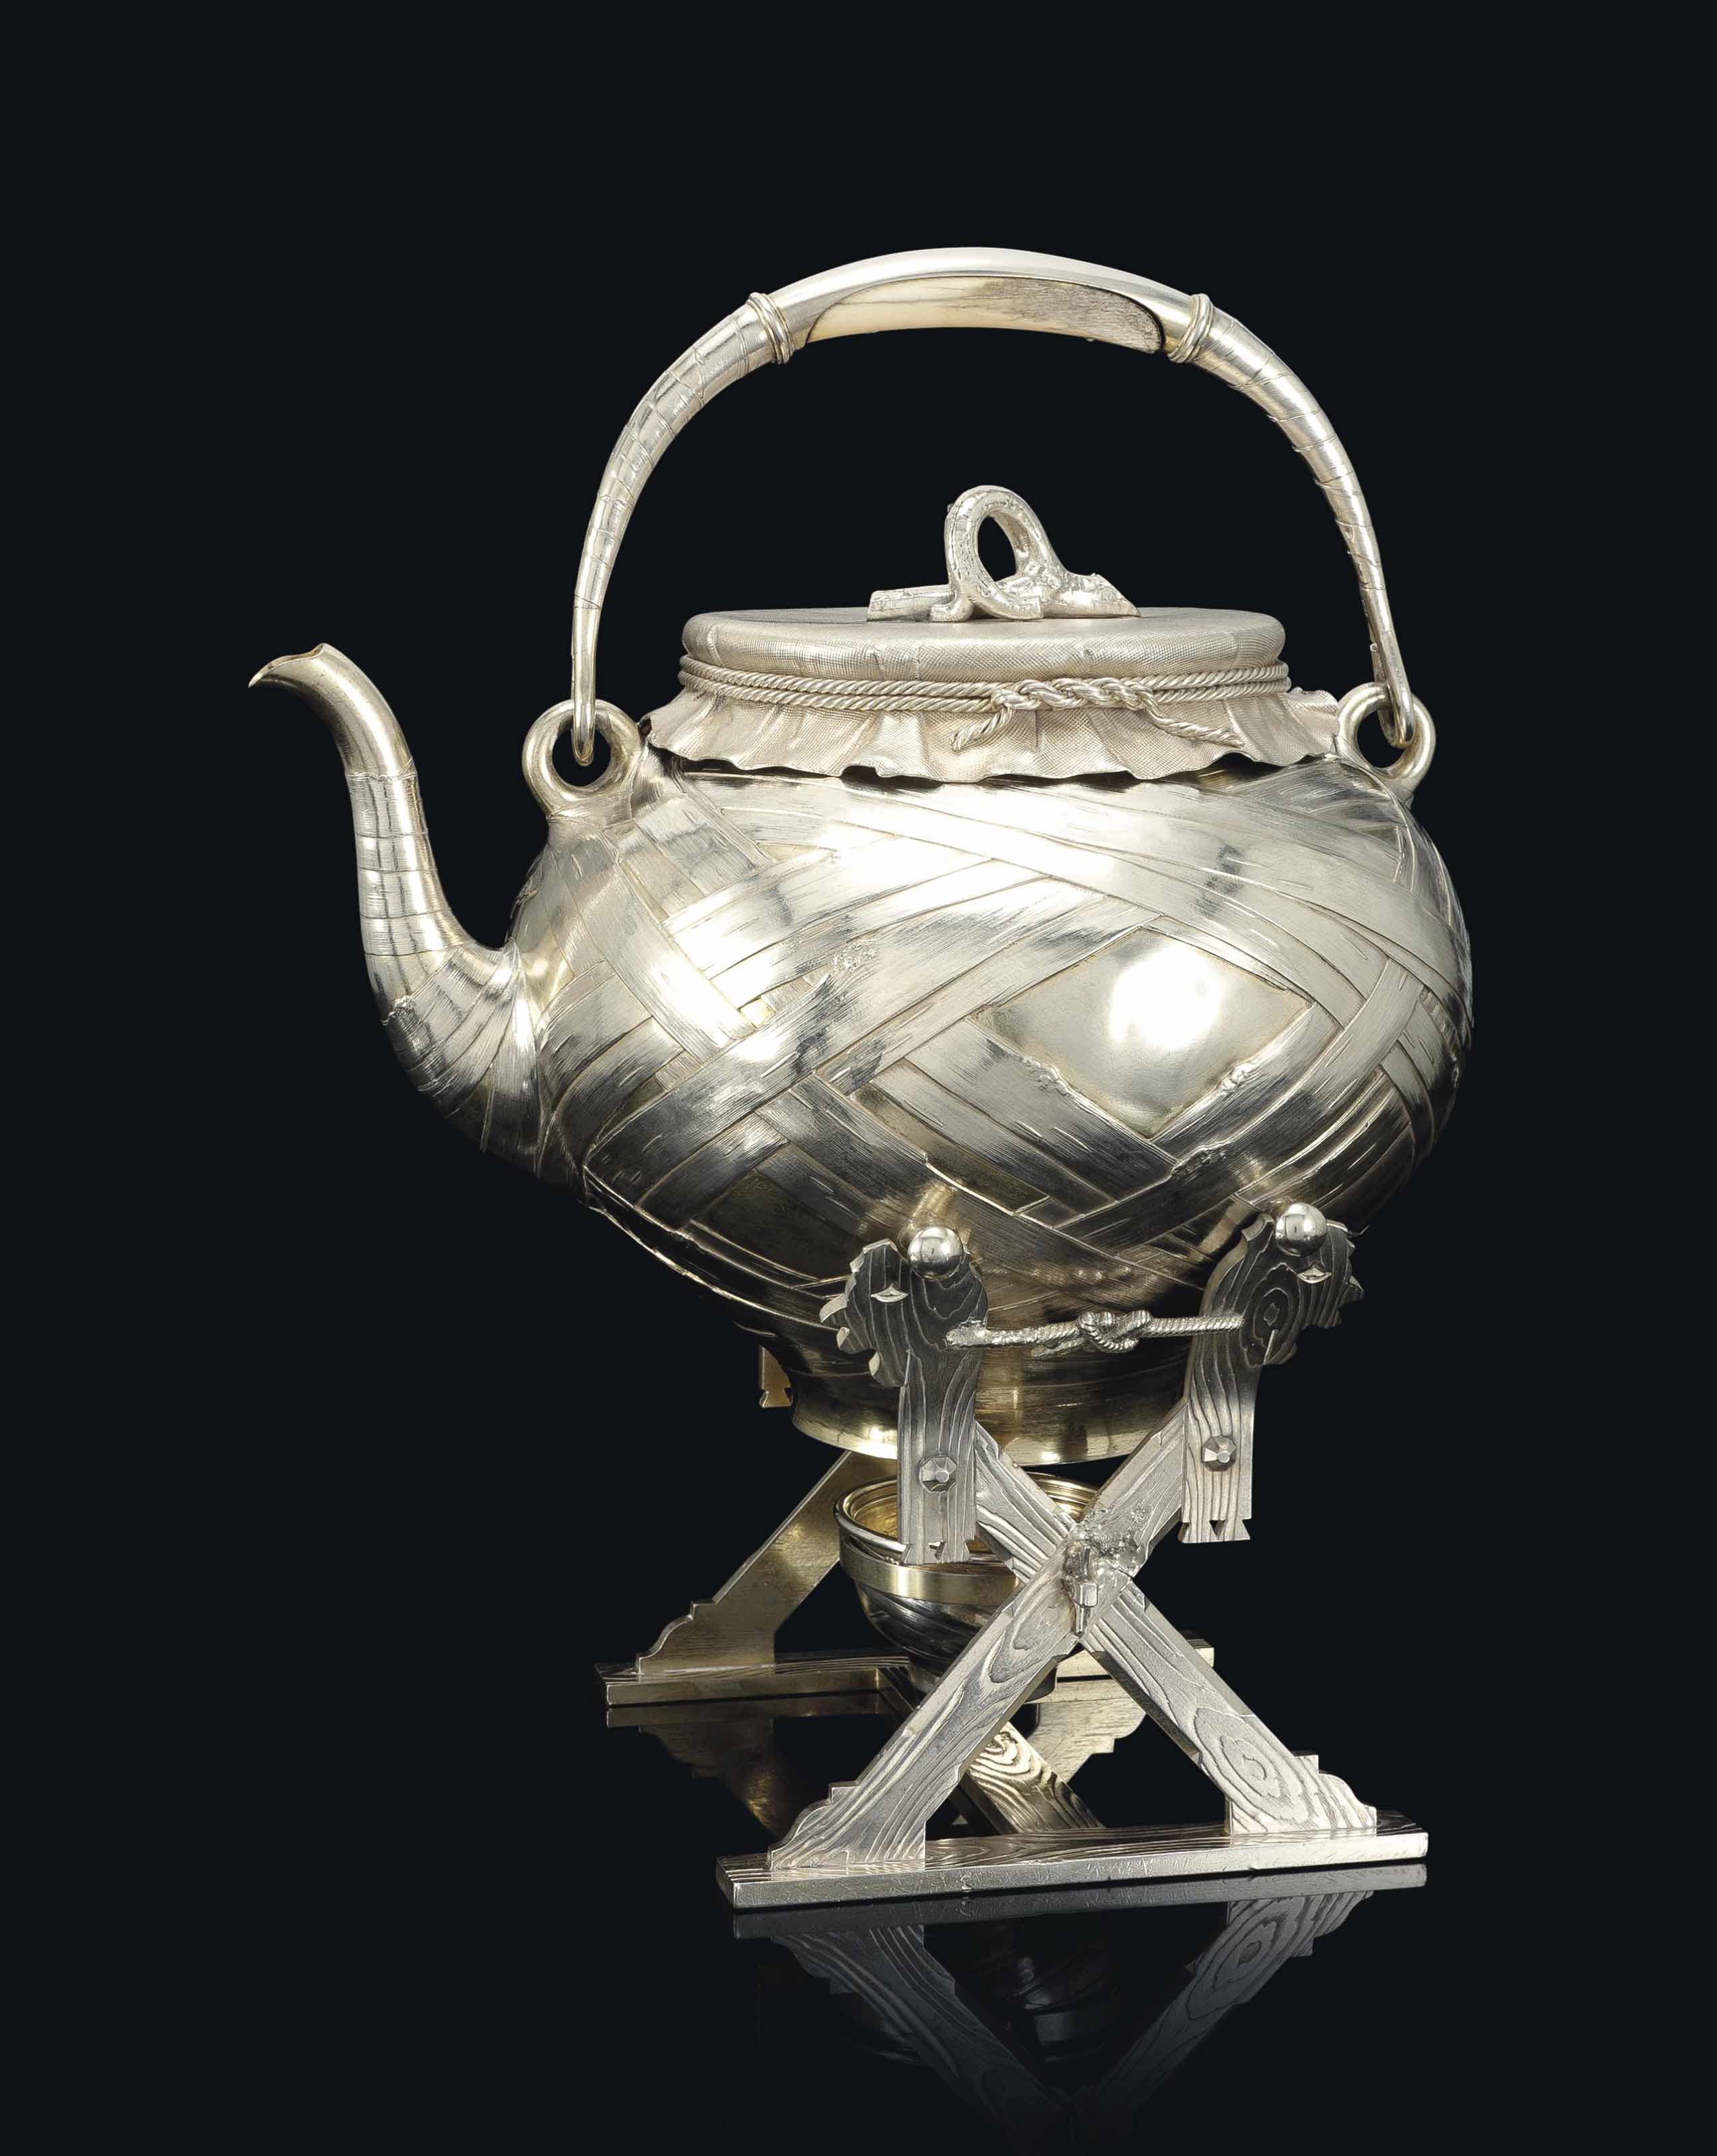 A SILVER TROMPE L'OEIL KETTLE-ON-STAND